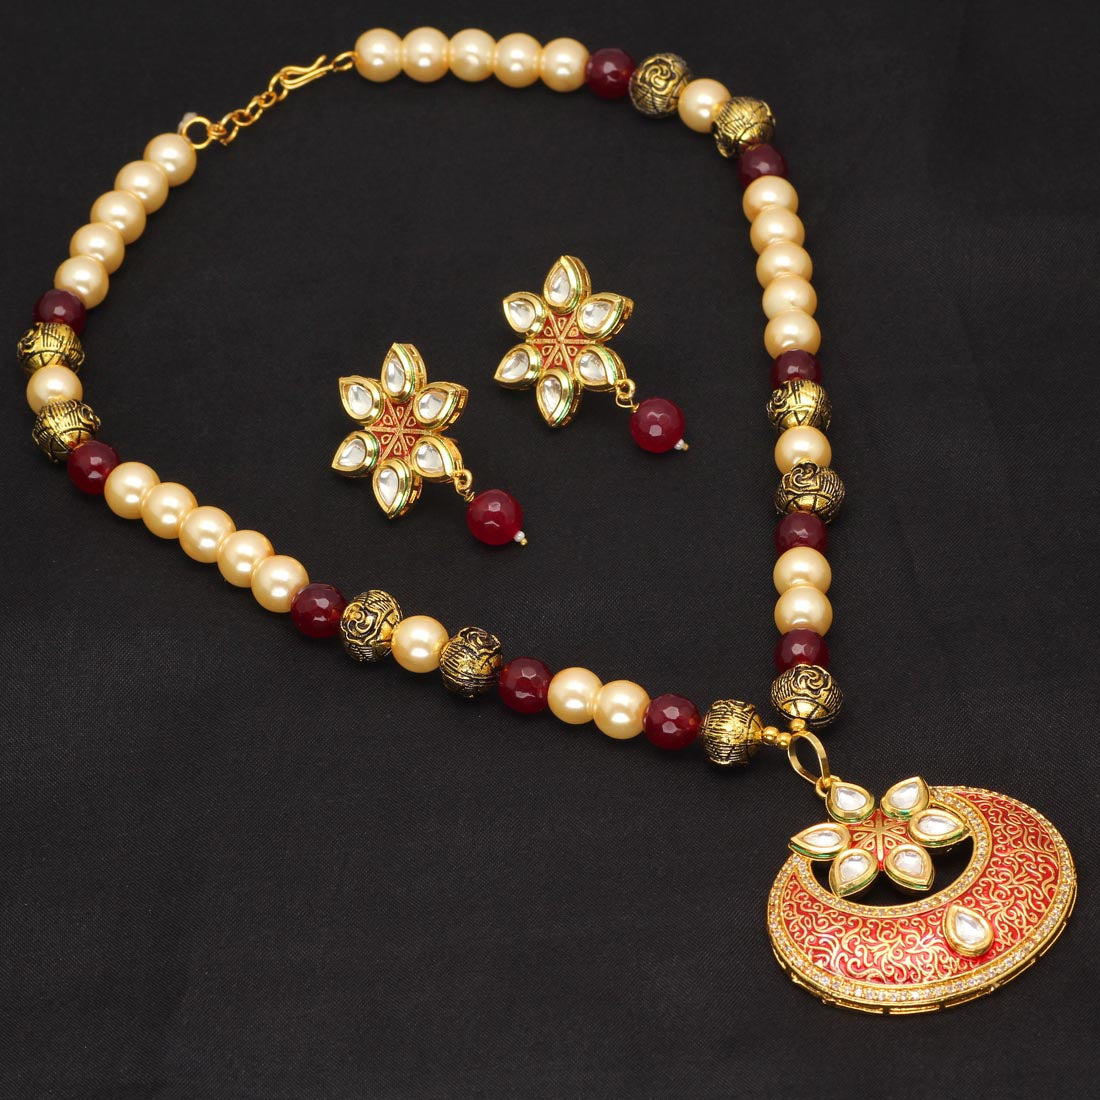 Gold Plated Meenakari Half Moon Kundan Necklace Set/Maroon